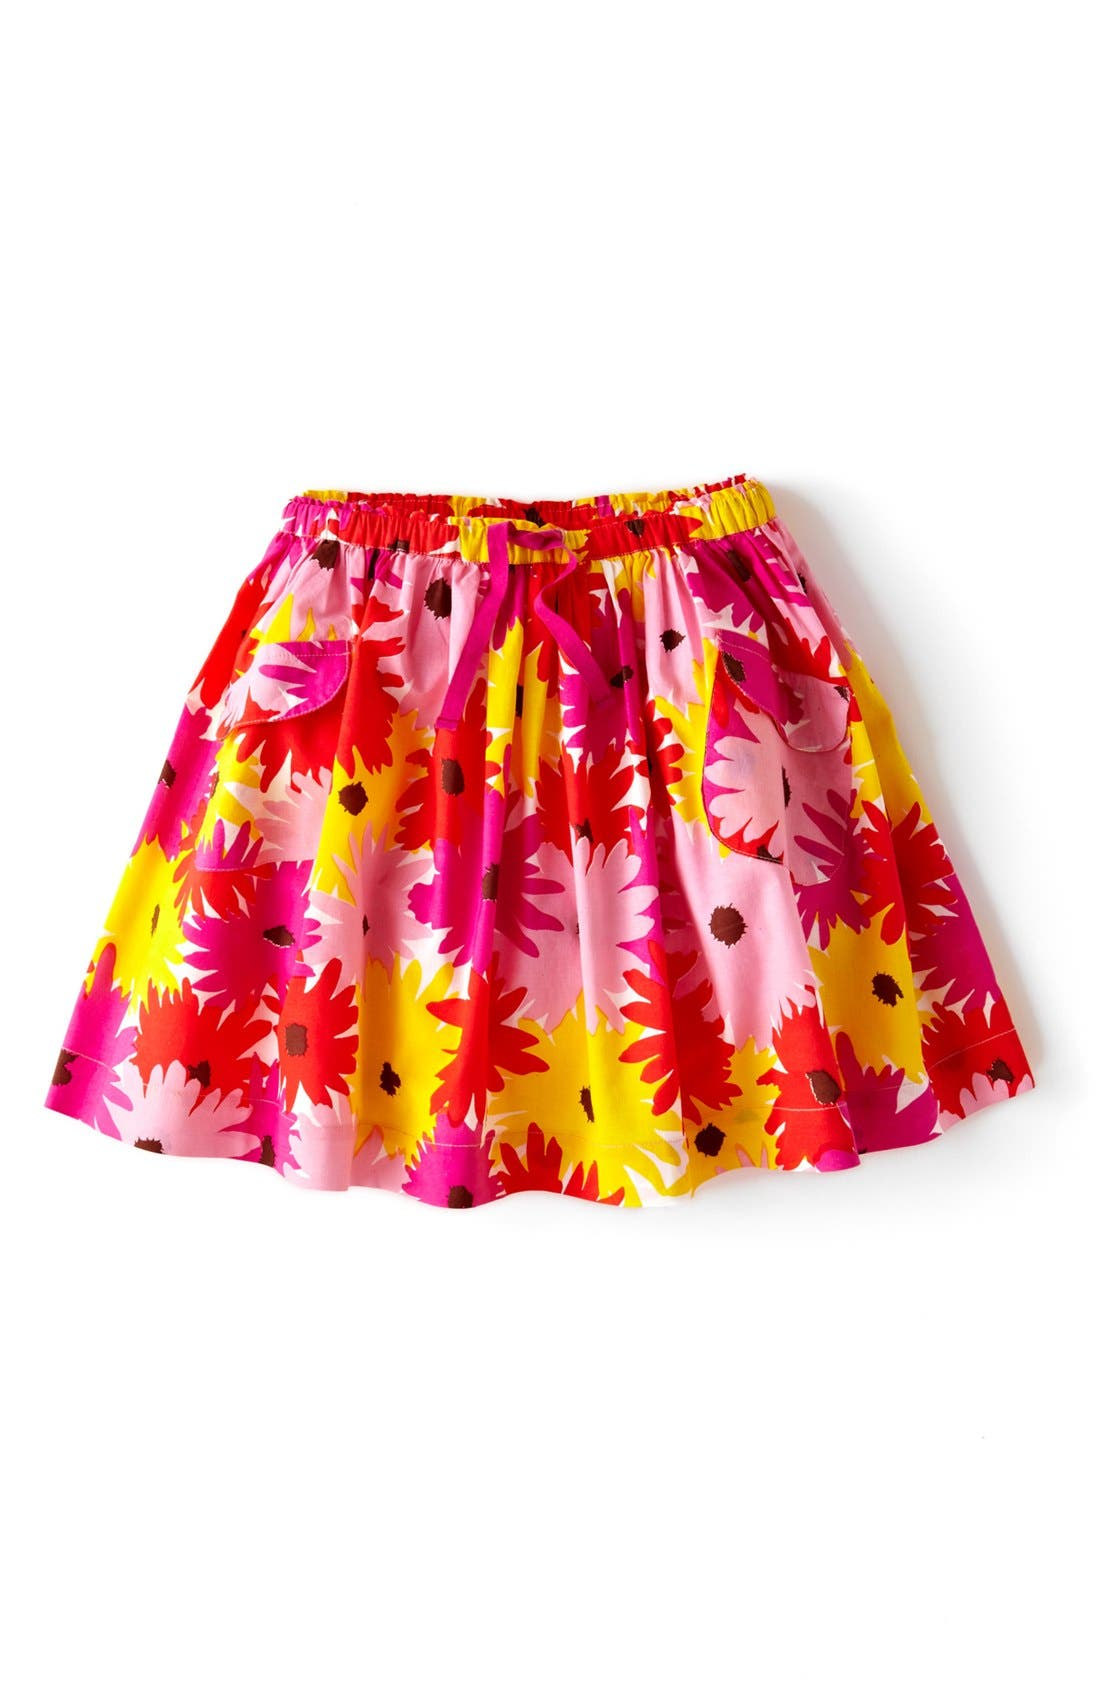 Alternate Image 1 Selected - Mini Boden 'Fun' Print Circle Skirt (Toddler Girls, Little Girls & Big Girls)